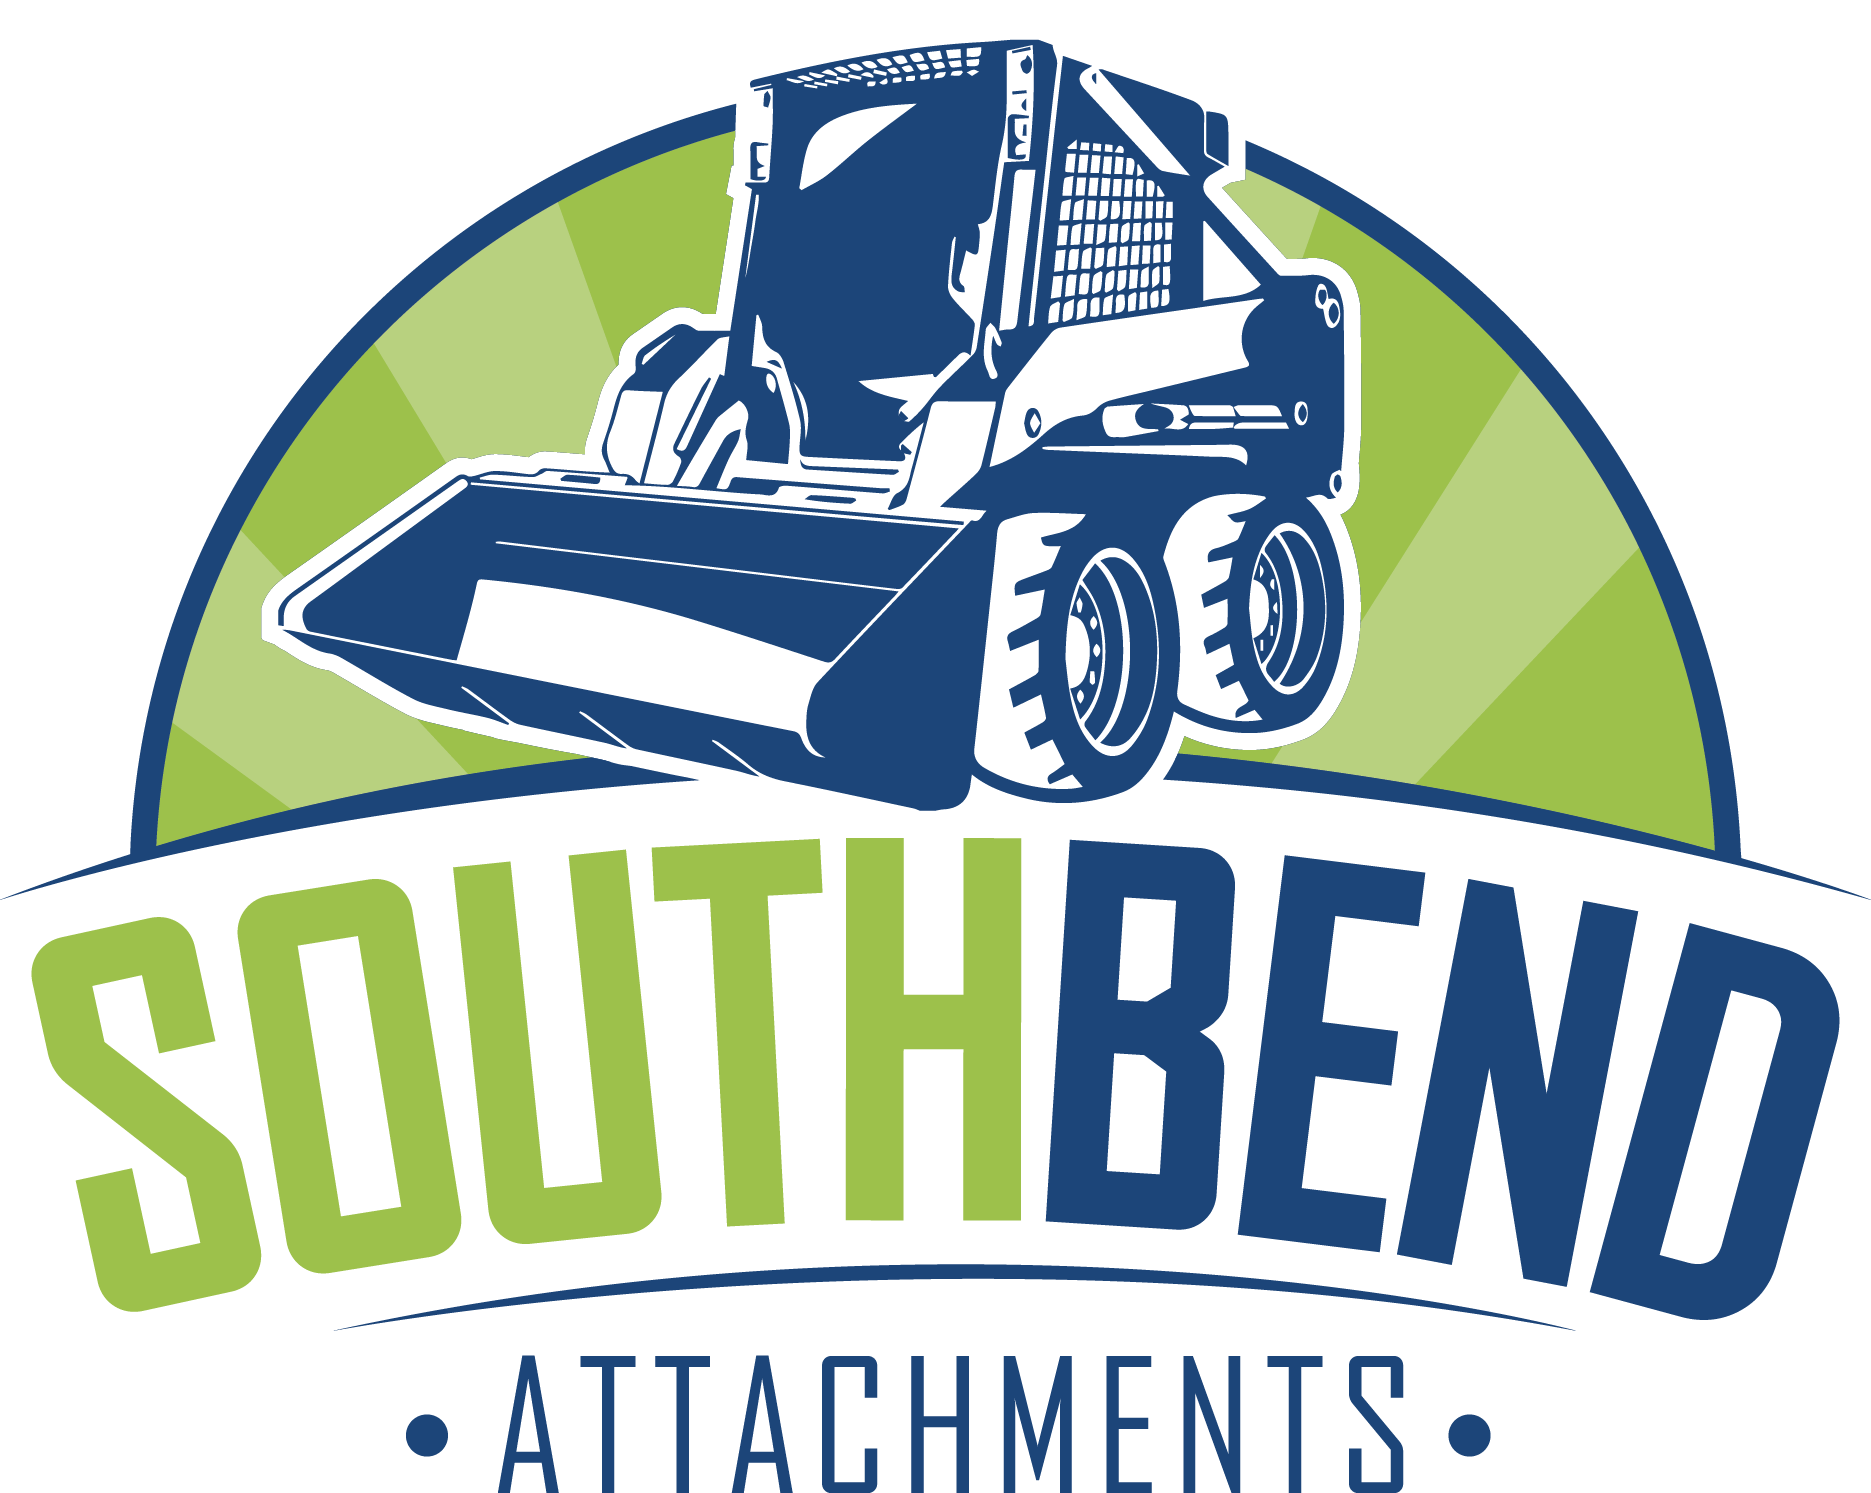 South Bend Attachments logo